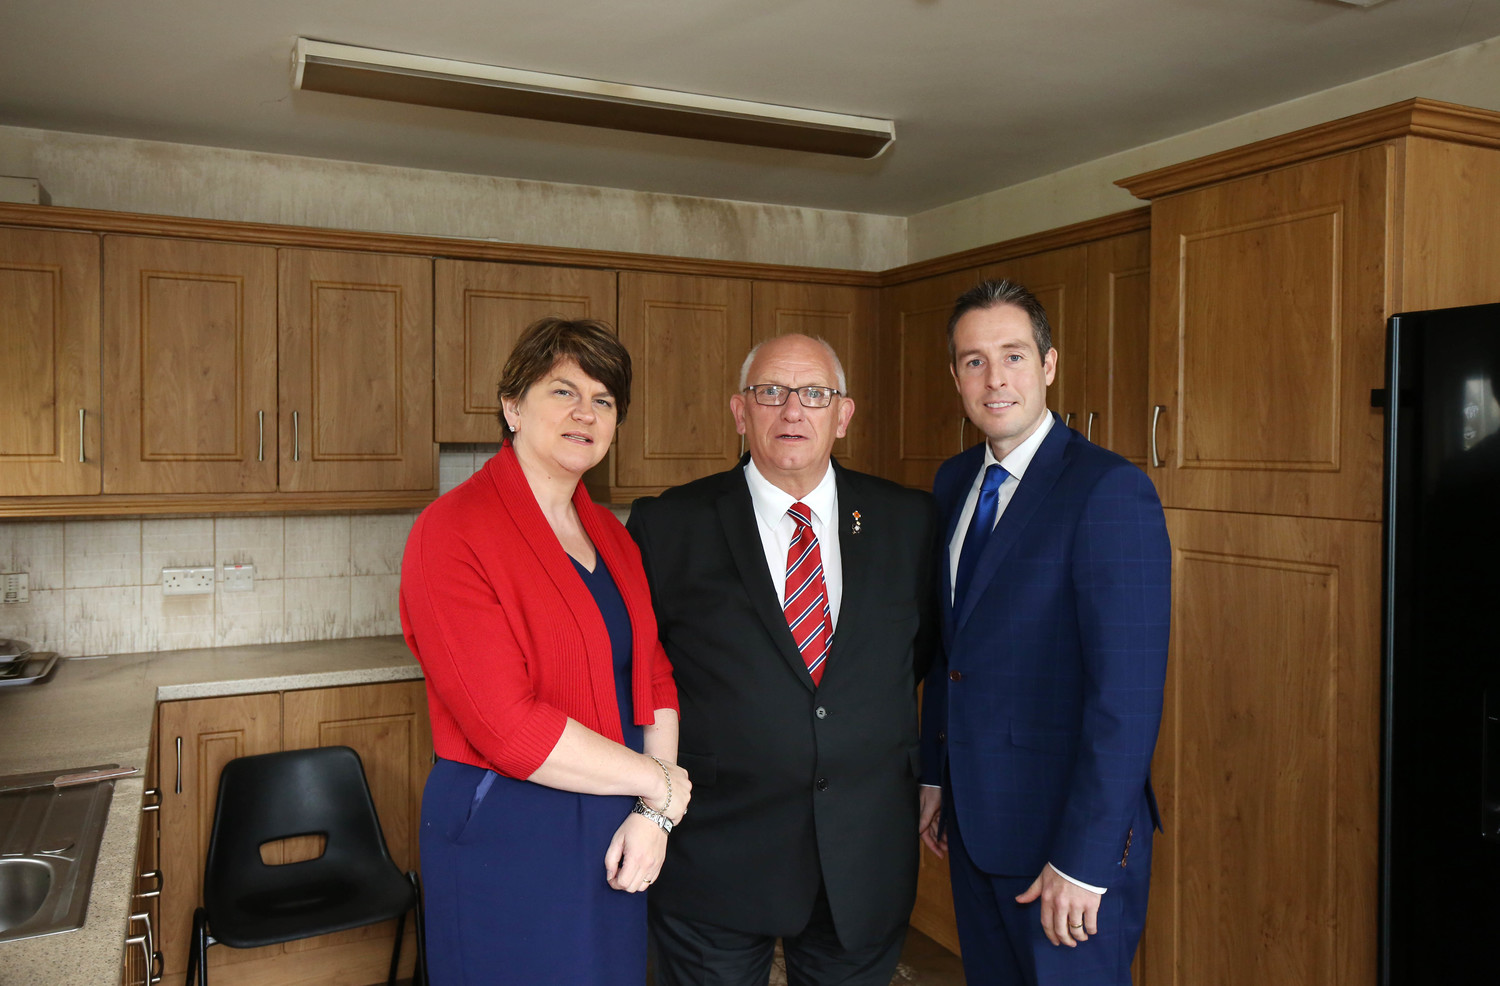 DUP leader Arlene Foster and outgoing Communities Minister Paul Givan with Billy Thomspon, centre, from Orange Community Network, at the launch of the community halls fund in October last year.